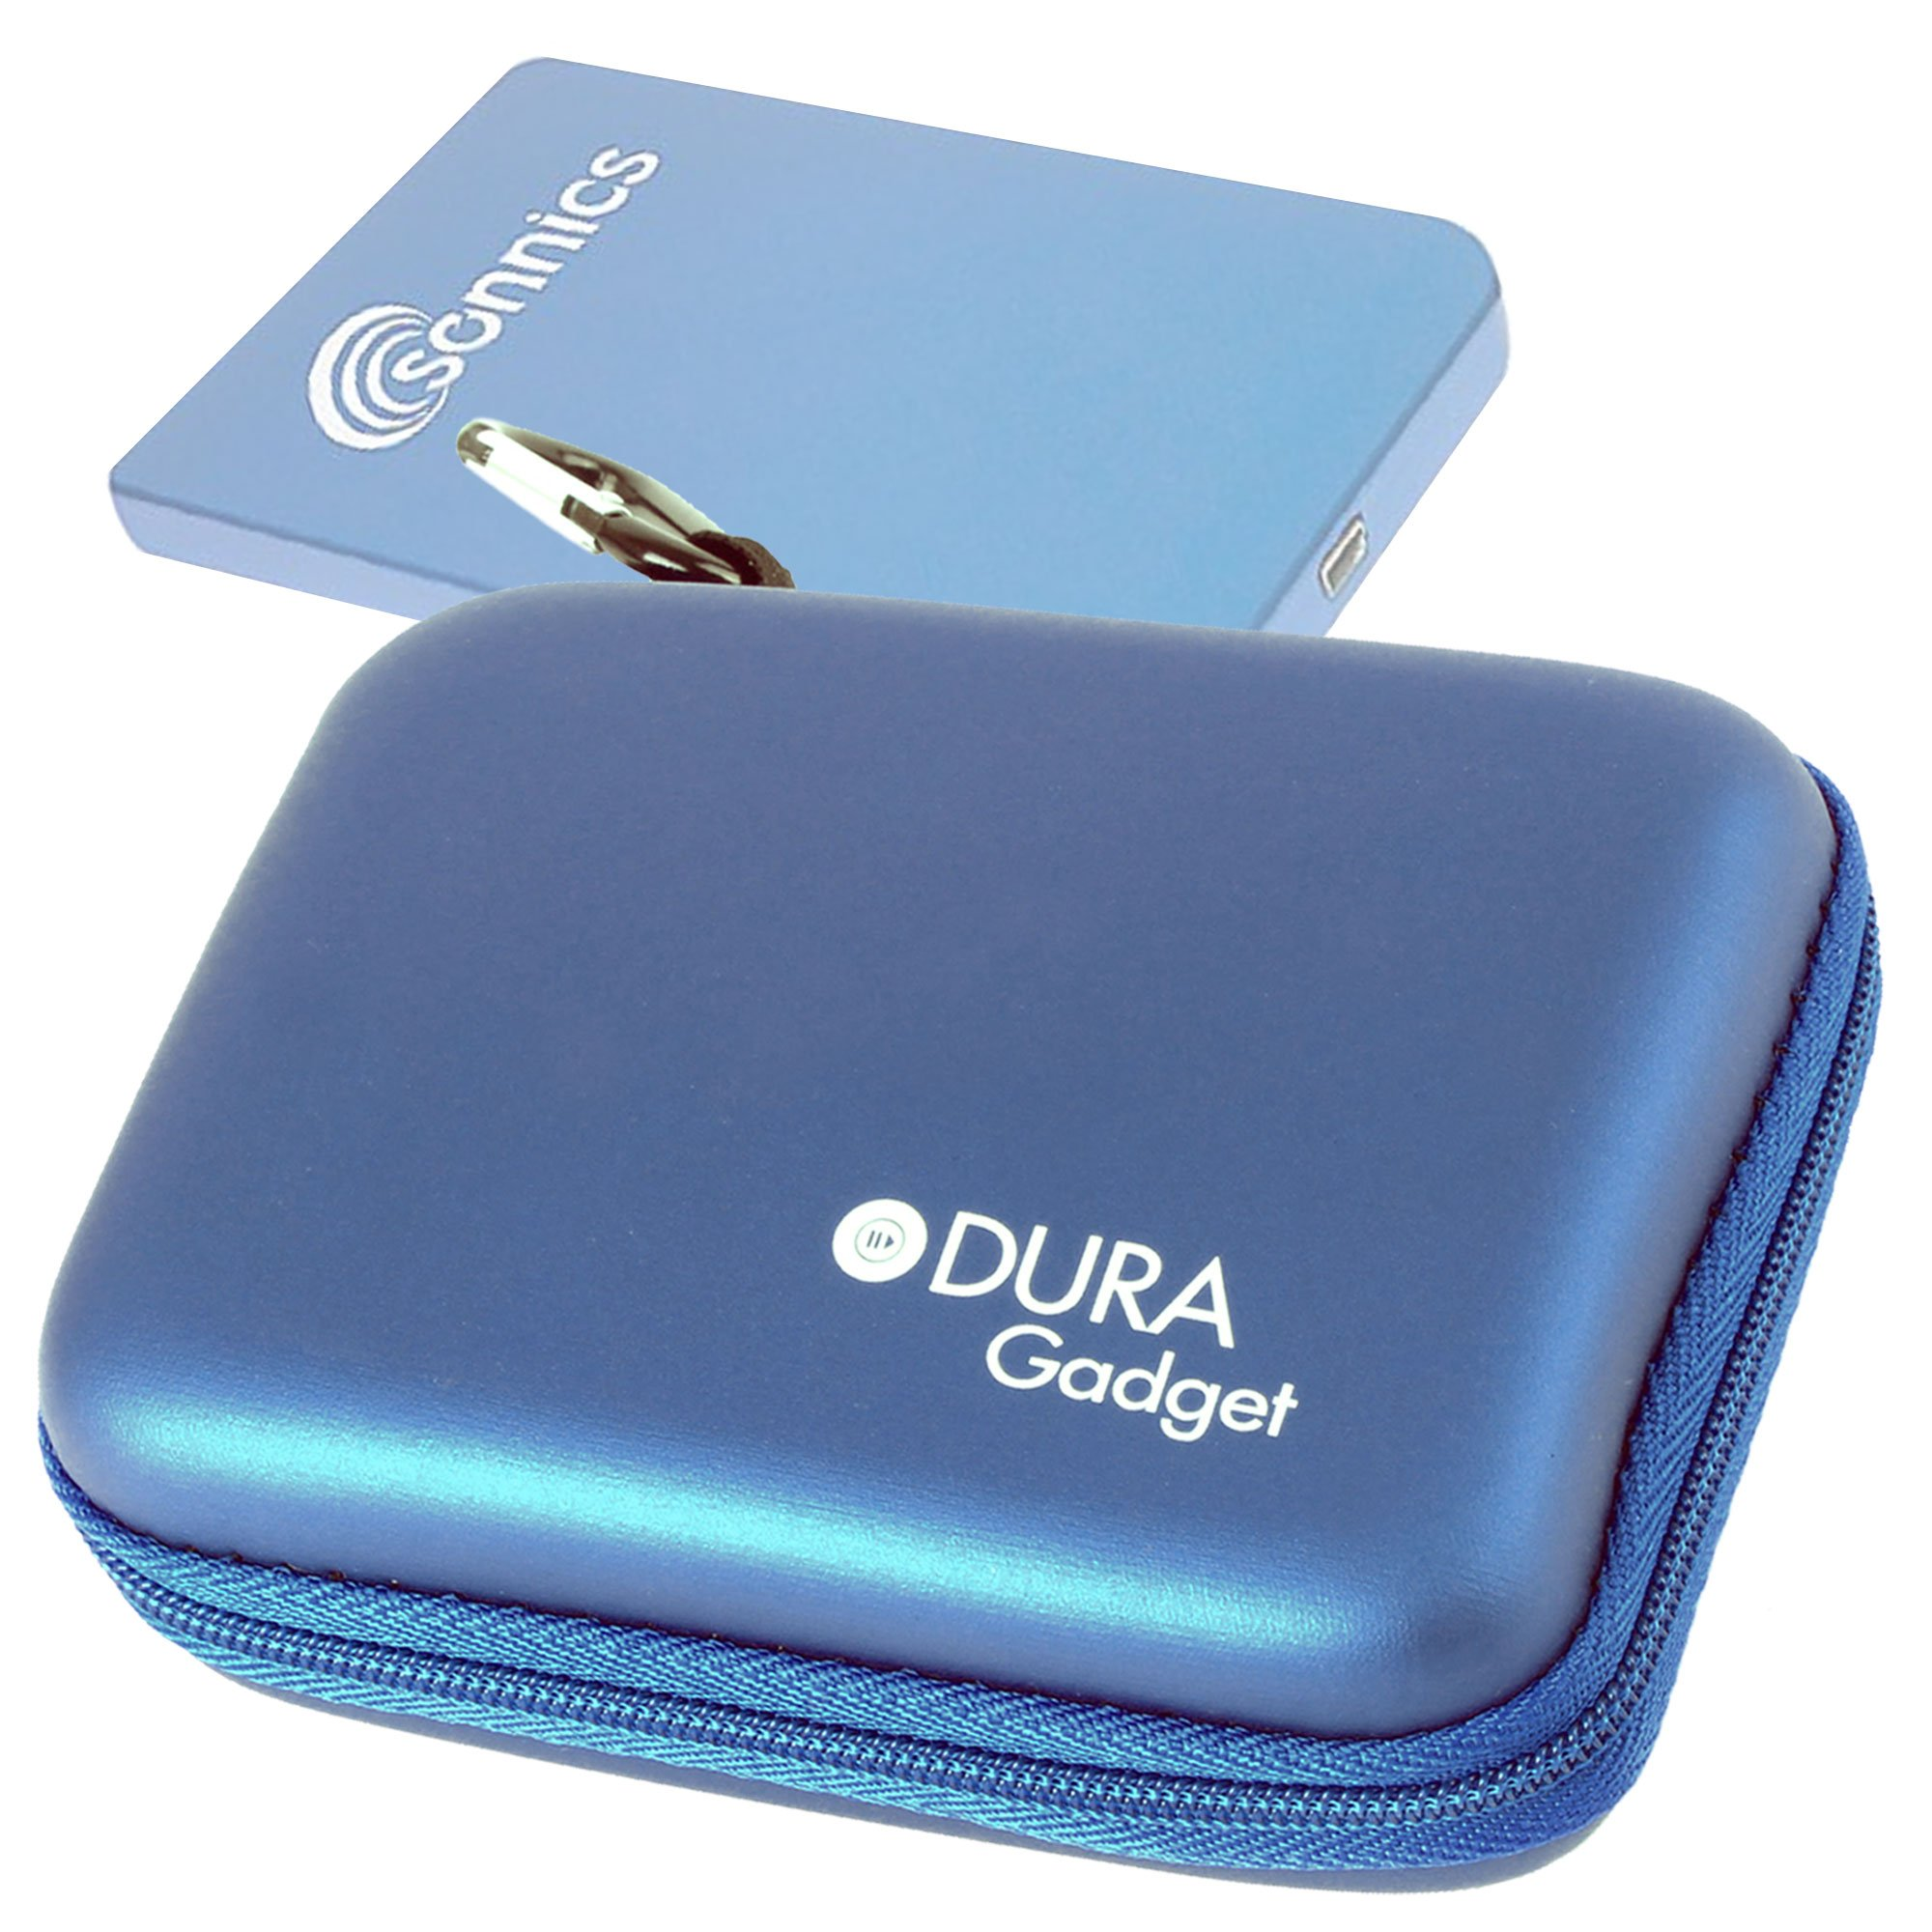 DURAGADGET Sturdy Solid Shock and Water Resistant Blue Case - Suitable for The Sonnics 750GB 2.5 Inch External Pocket Sized USB Hard Drive (Black, Blue, Silver, Pink)